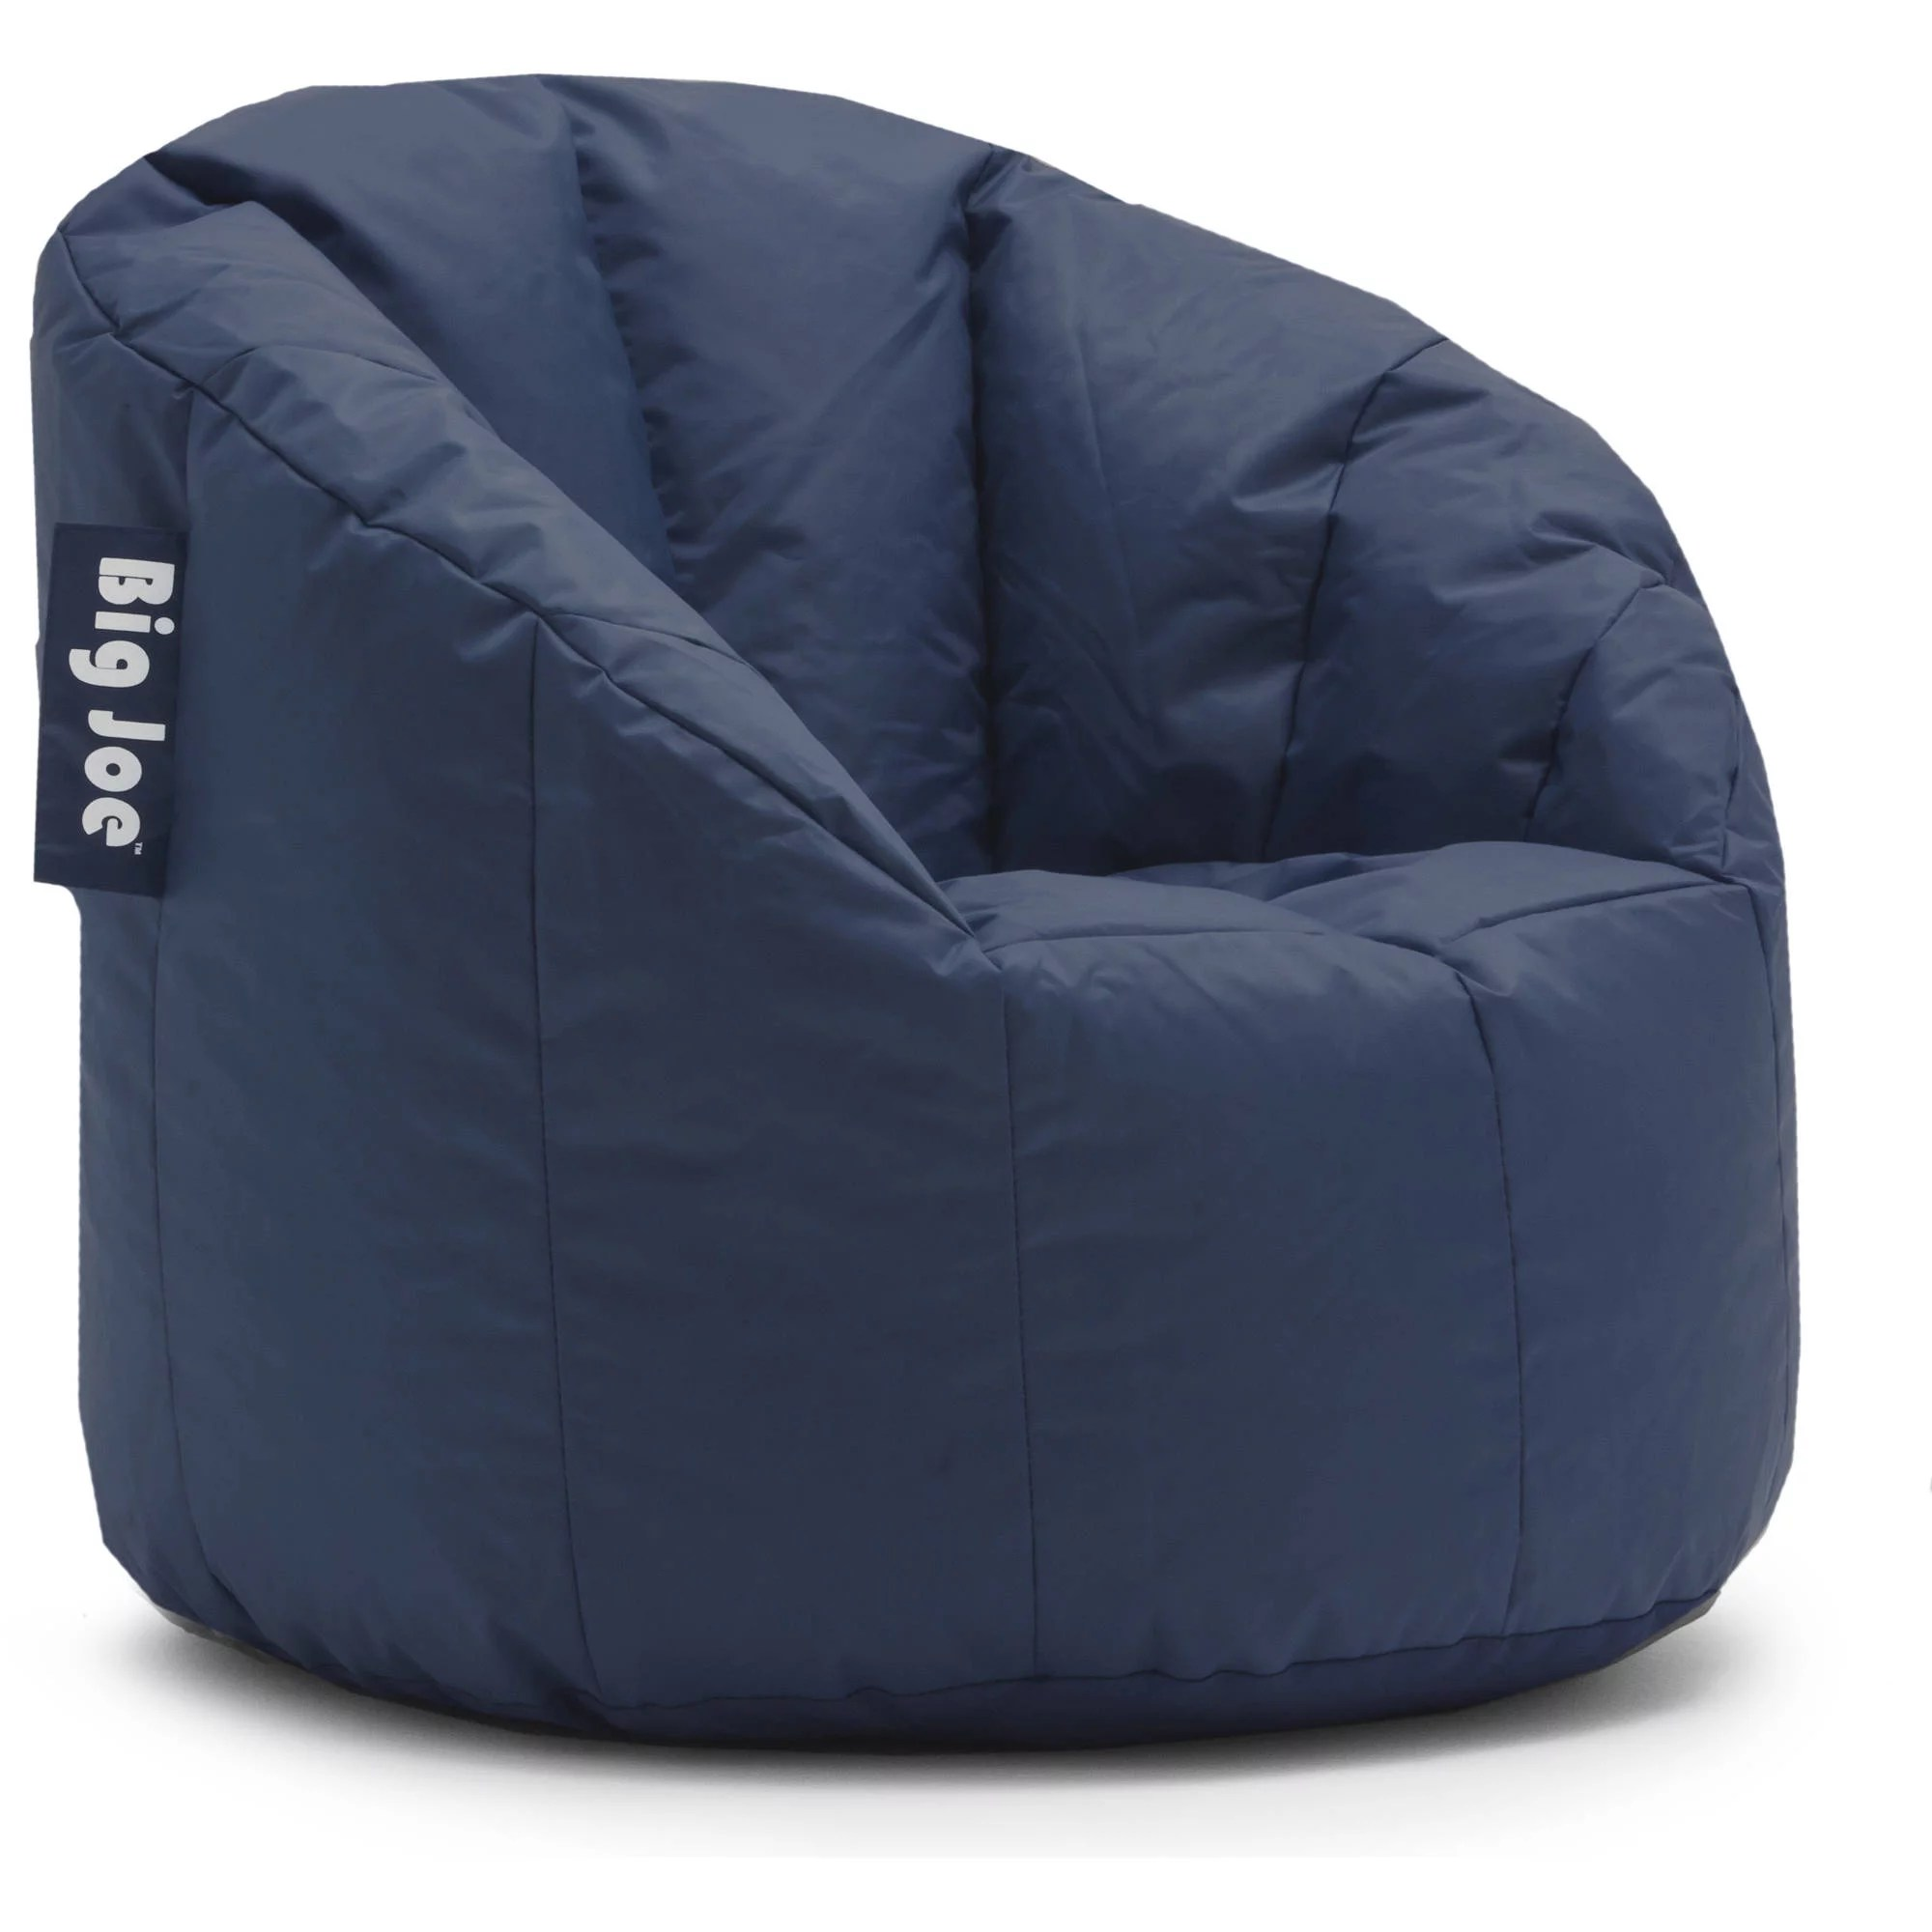 big joe bean bag chair multiple colors 33 x 32 25 chromcraft table and chairs milano 28